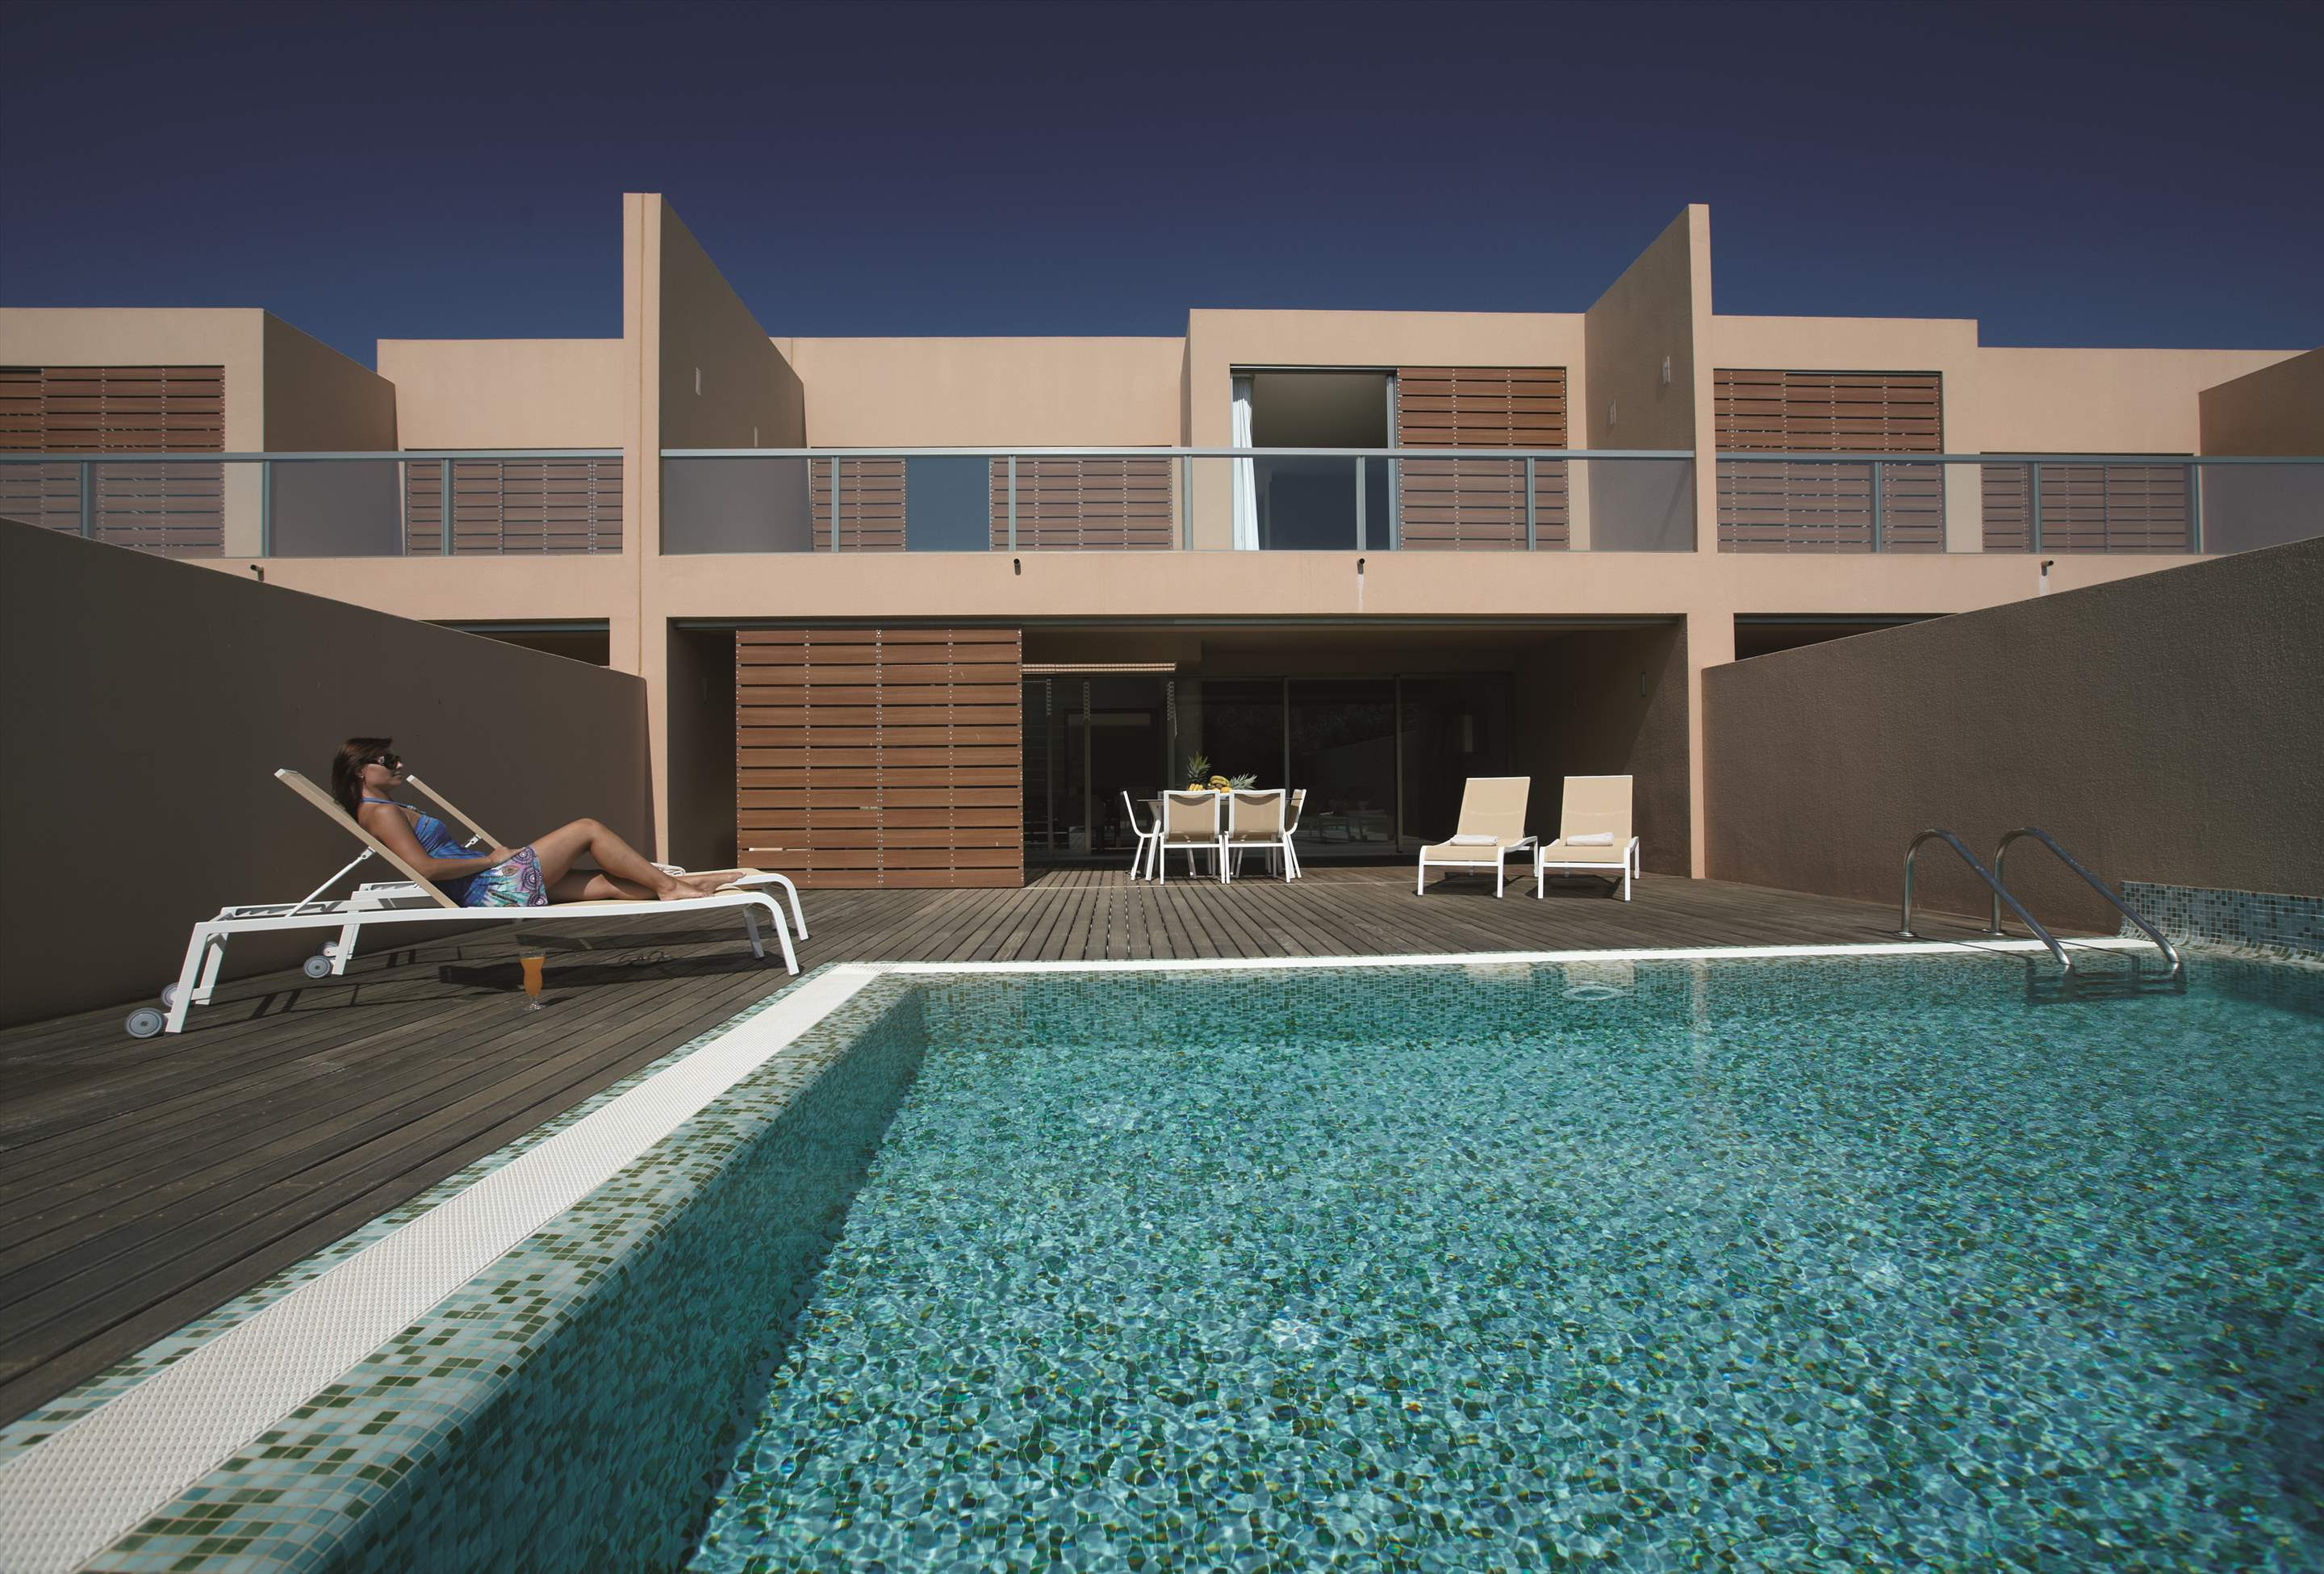 Salgados Beach Villas, 3 Bed, SC Basis, 3 bedroom villa in Vidamar Resort, Algarve Photo #1